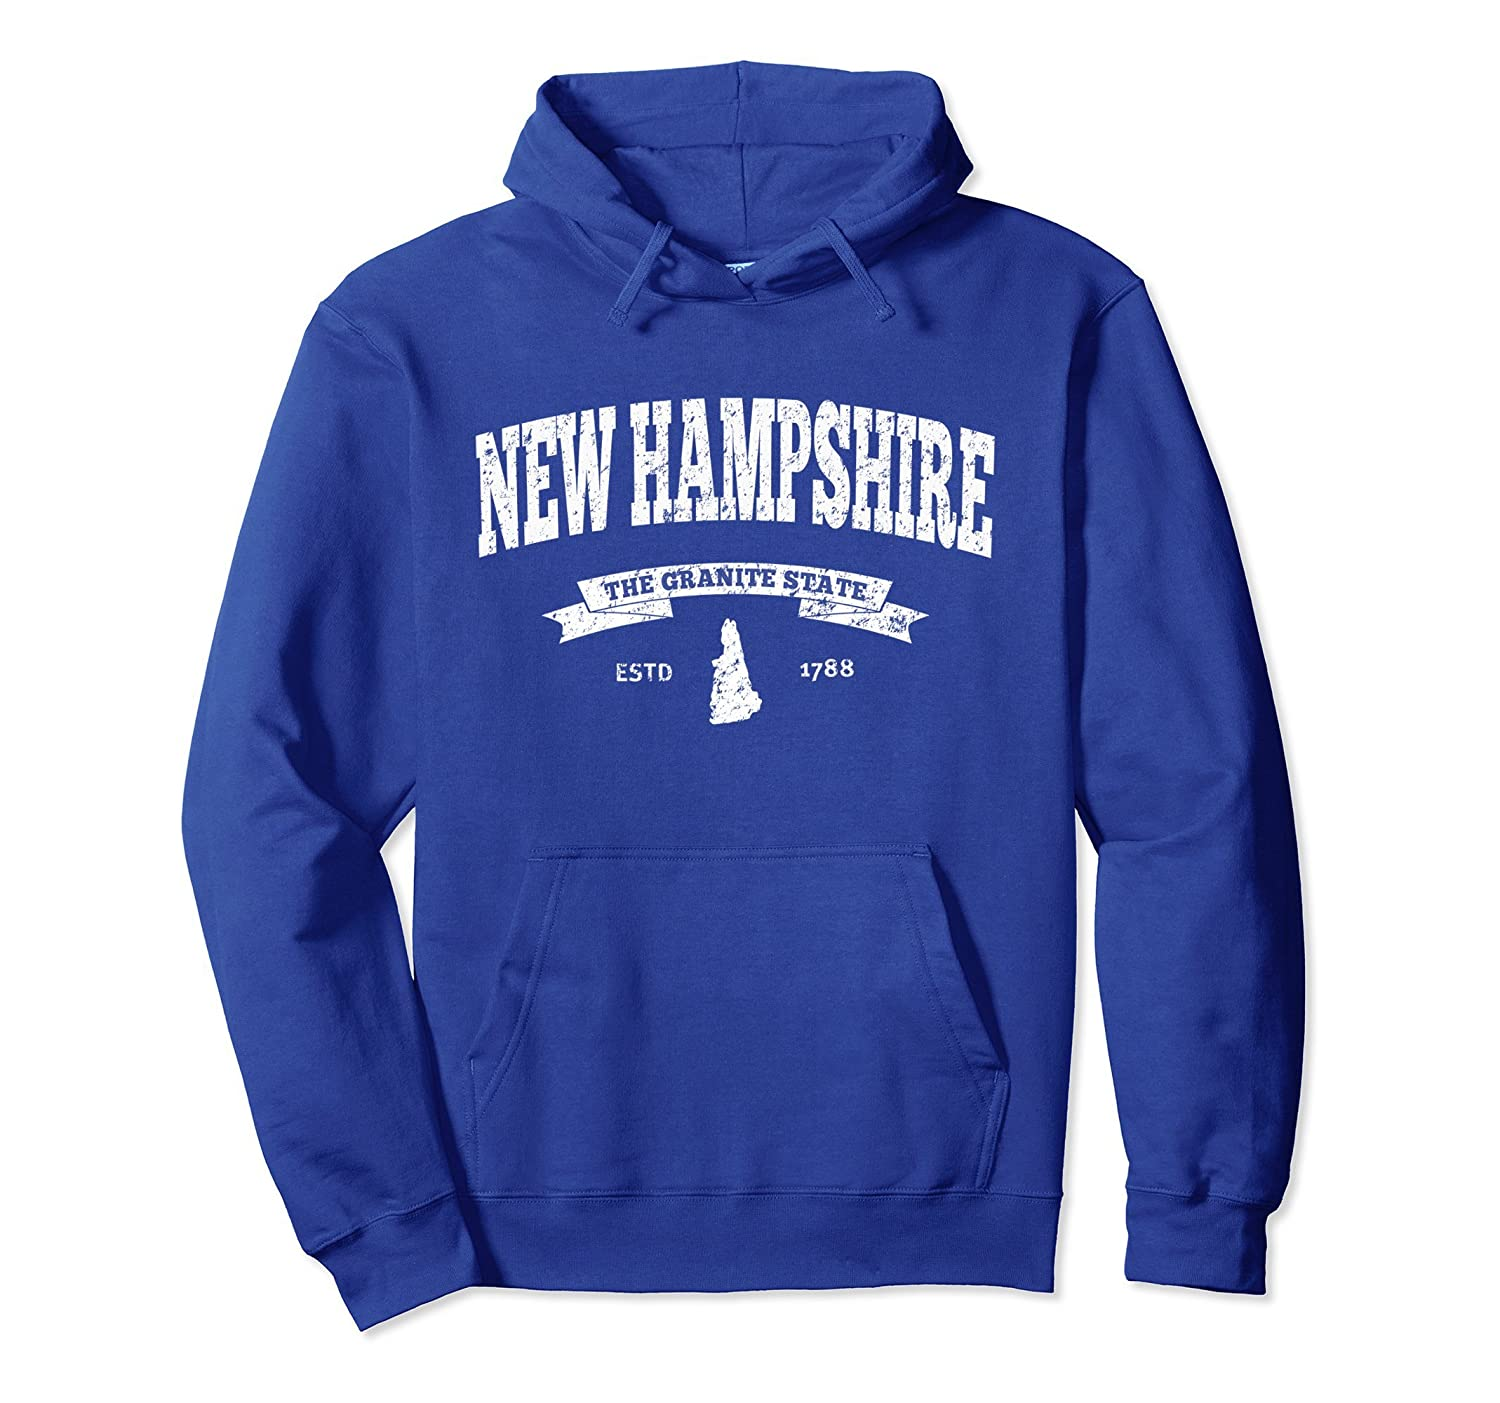 New Hampshire Hoodie. Vintage New Hampshire Sweatshirt Retro-ah my shirt one gift